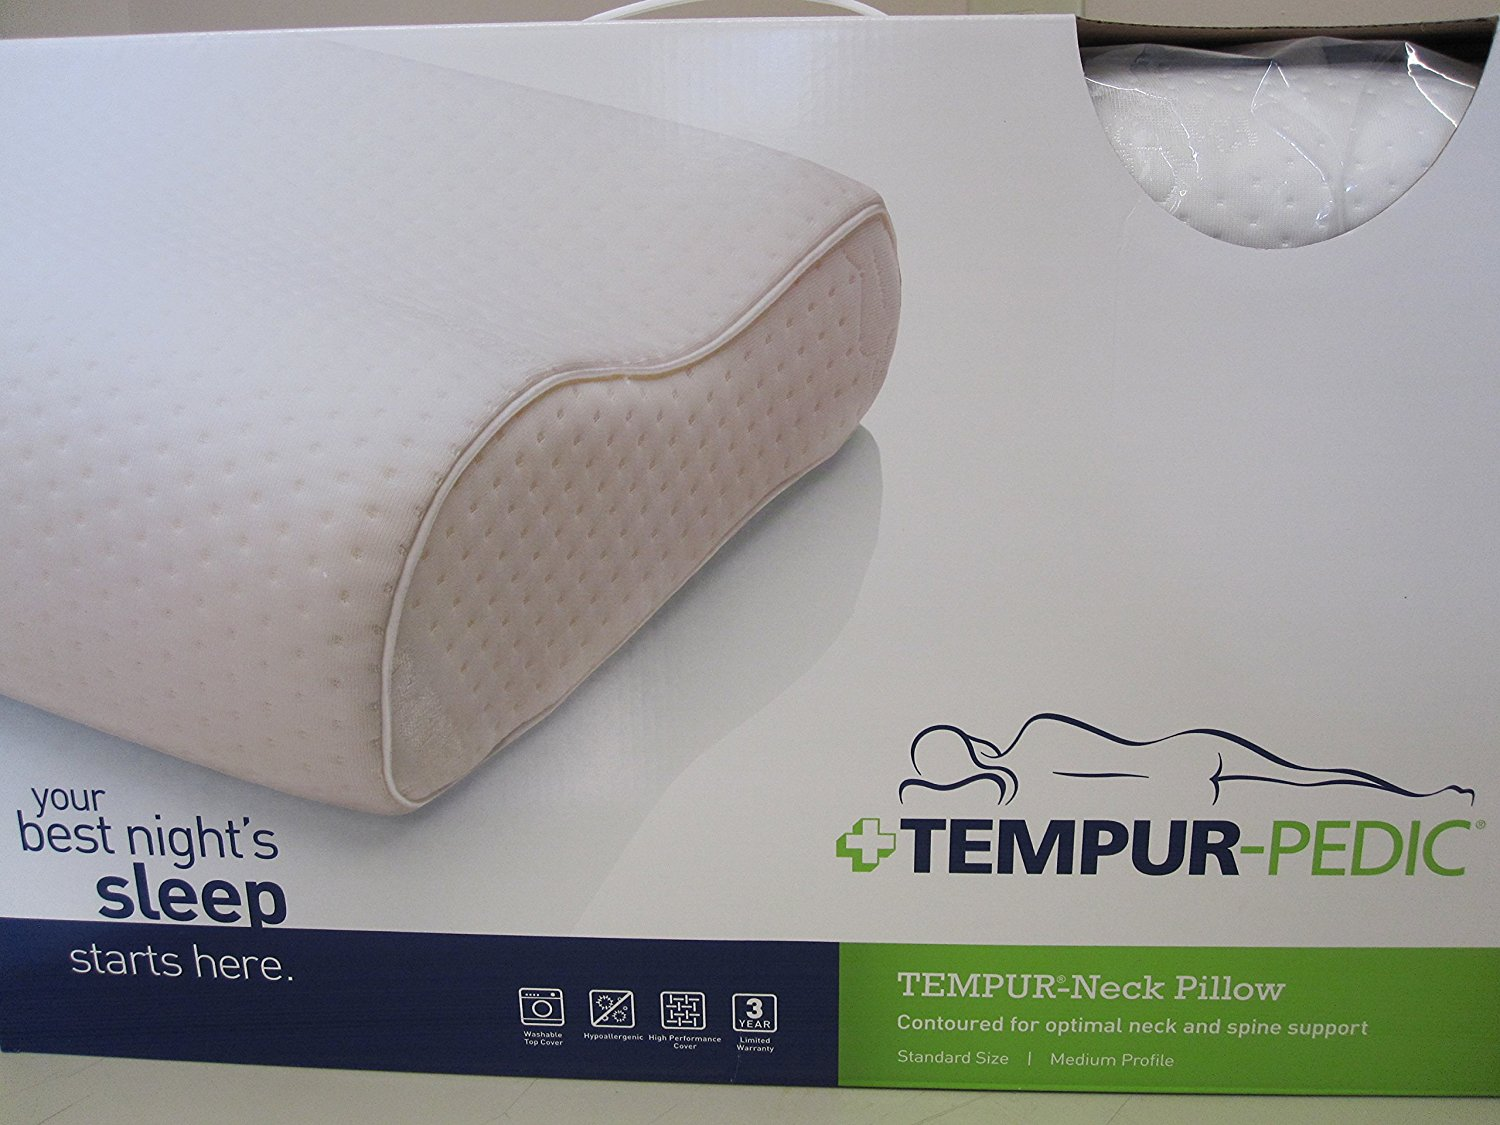 Swedish Neck Pillow from Tempur-Pedic